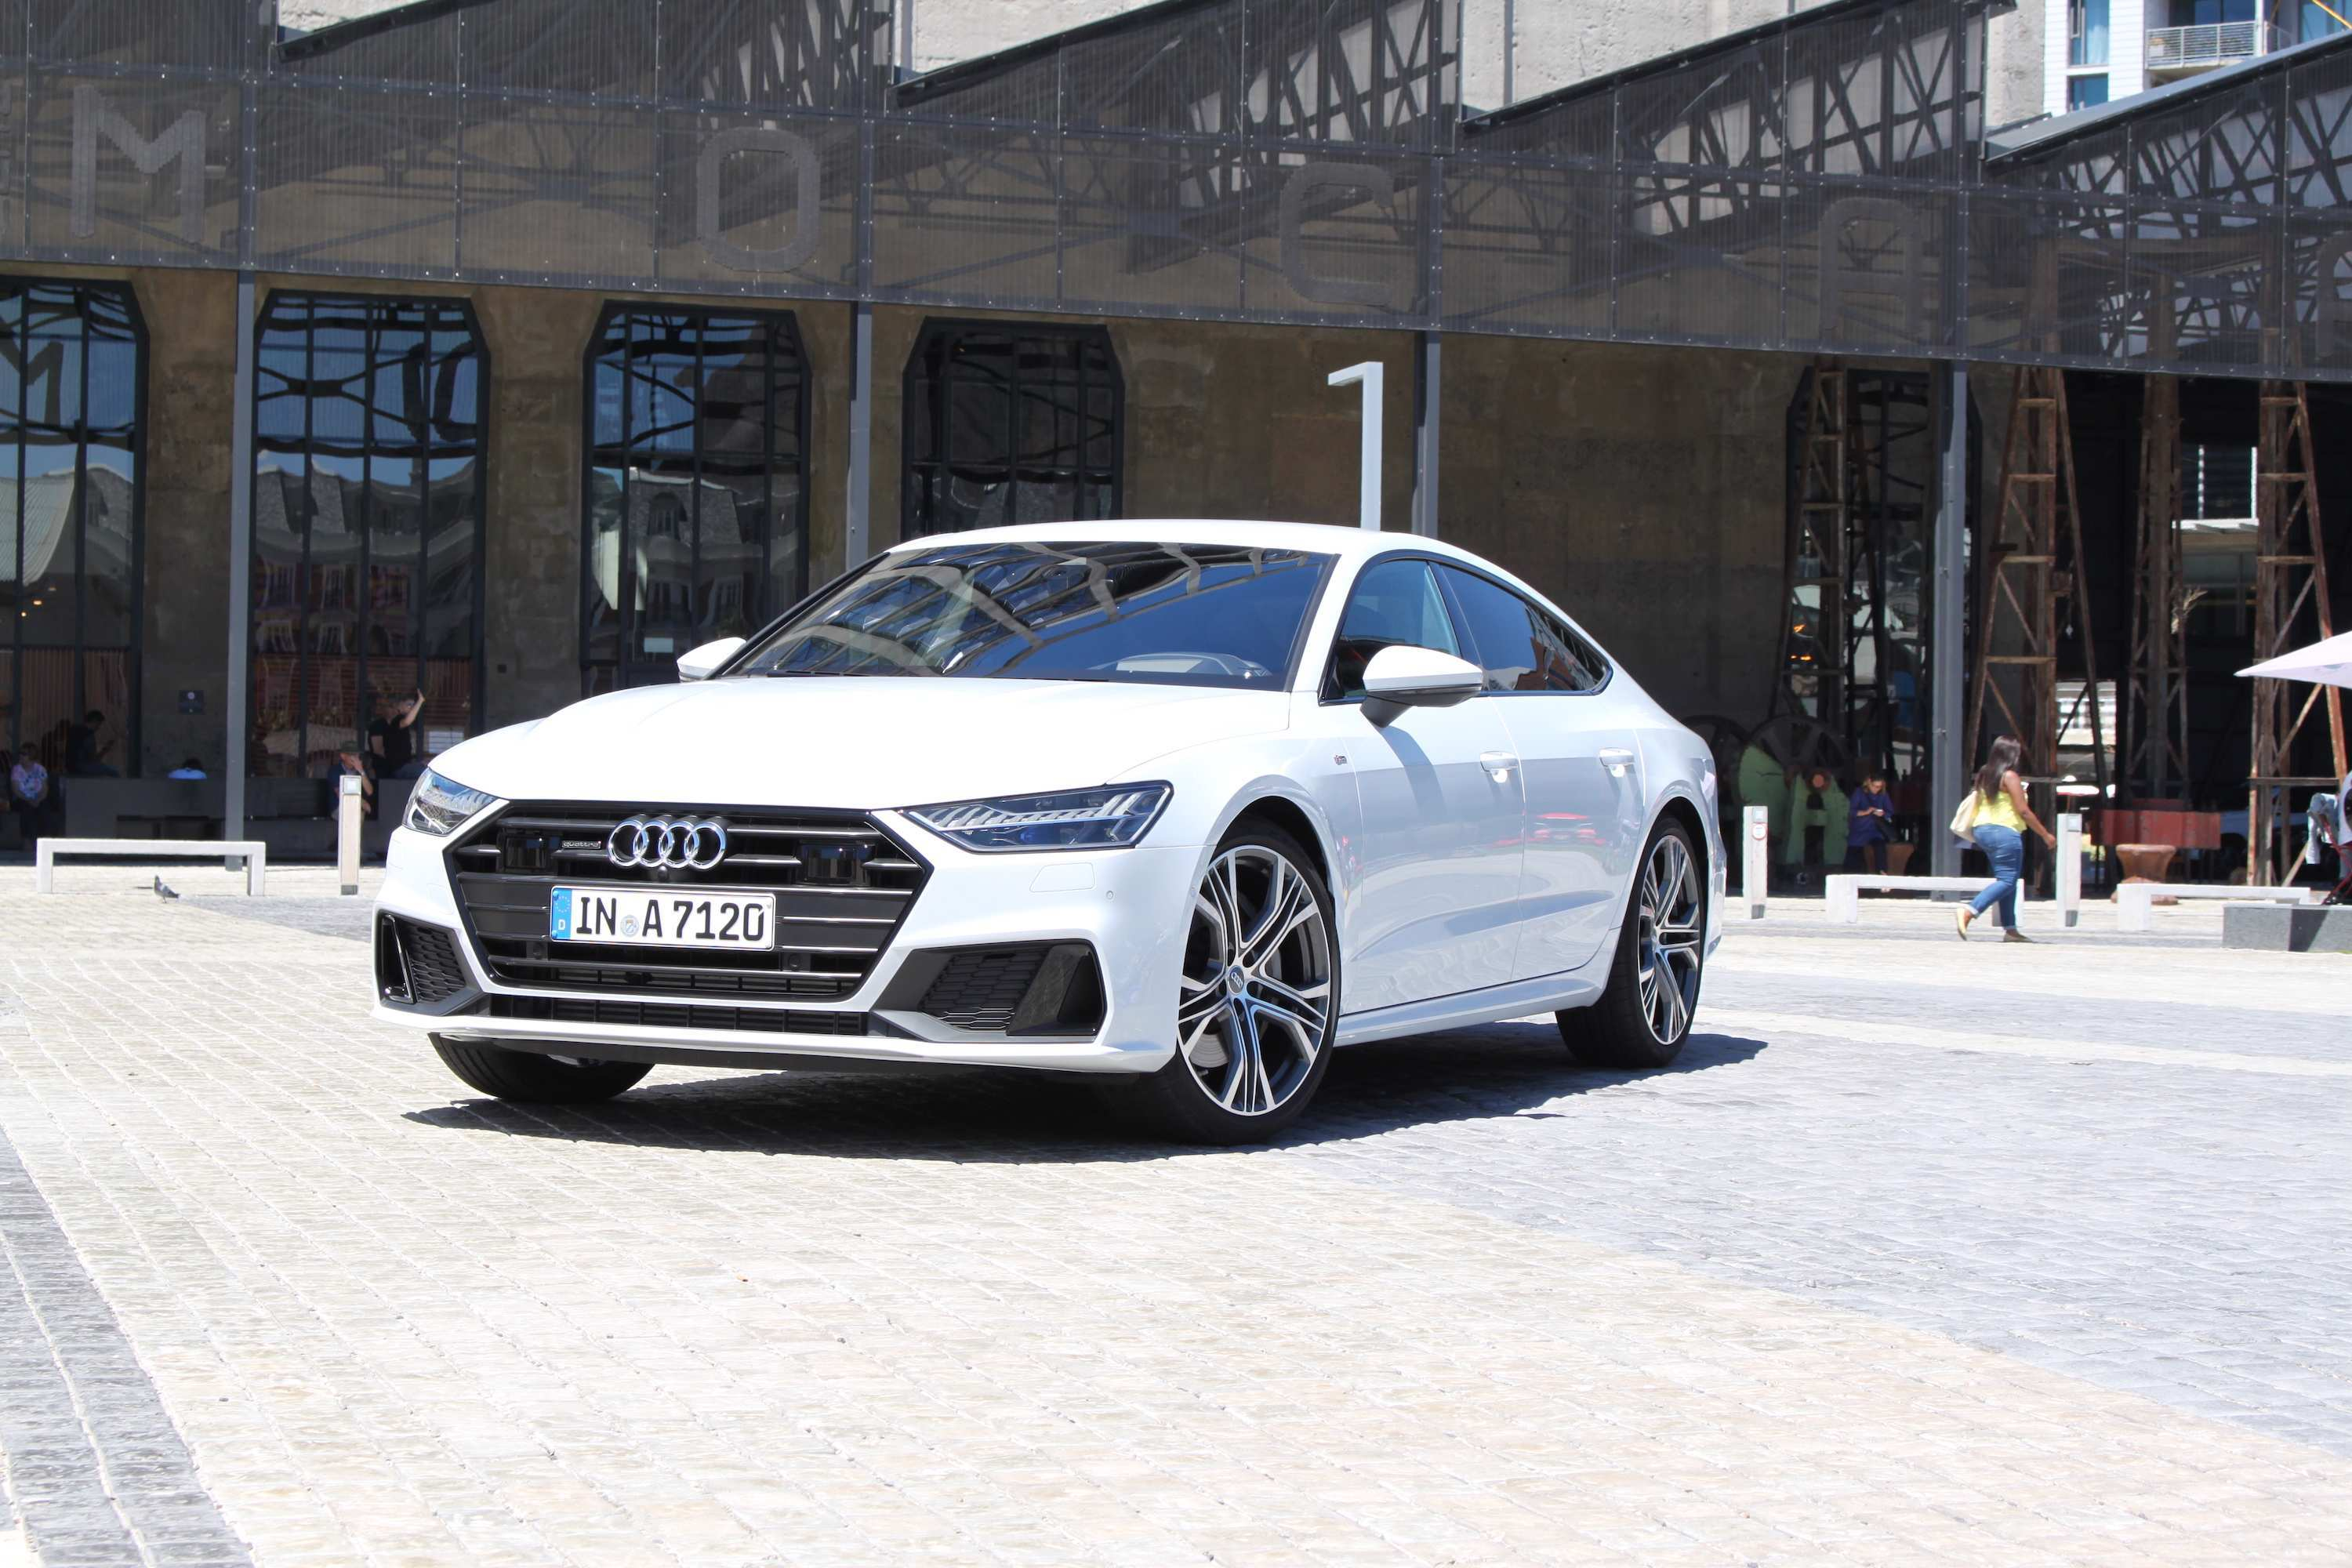 41 Concept of 2019 Audi A7 Dimensions Performance and New Engine for 2019 Audi A7 Dimensions